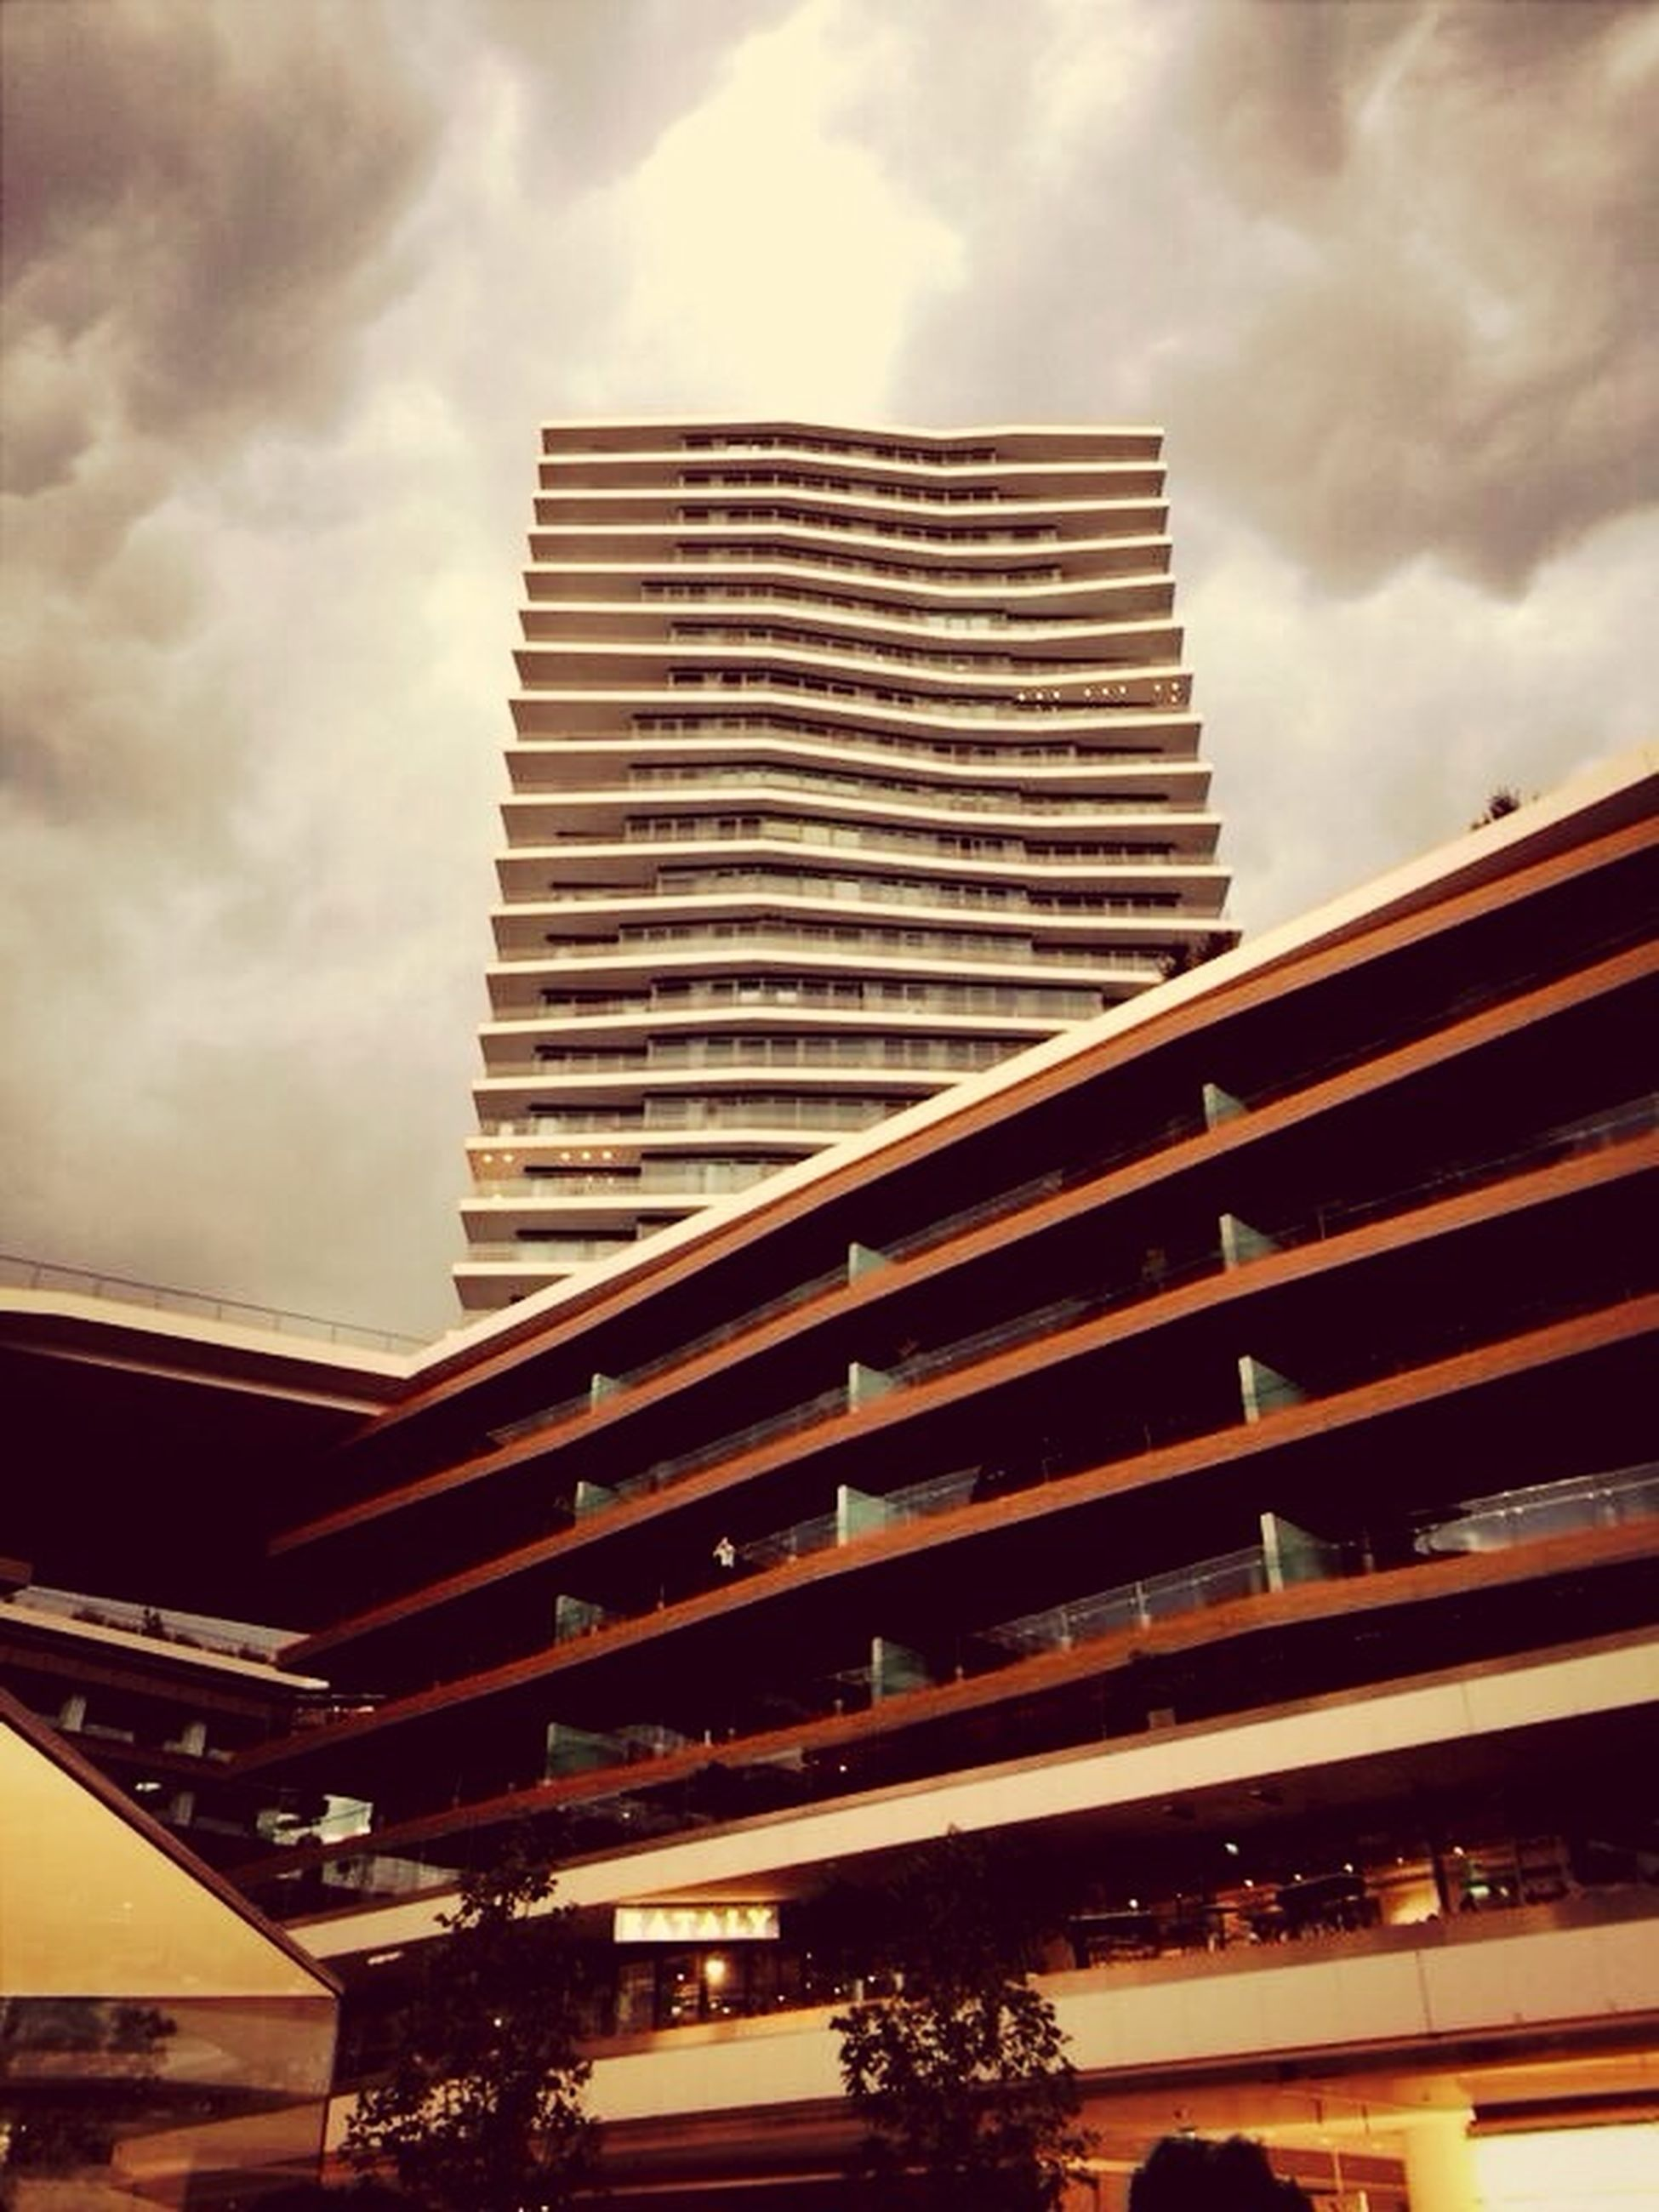 low angle view, architecture, built structure, building exterior, sky, cloud - sky, cloudy, modern, cloud, building, city, skyscraper, office building, outdoors, tall - high, no people, overcast, day, roof, tower